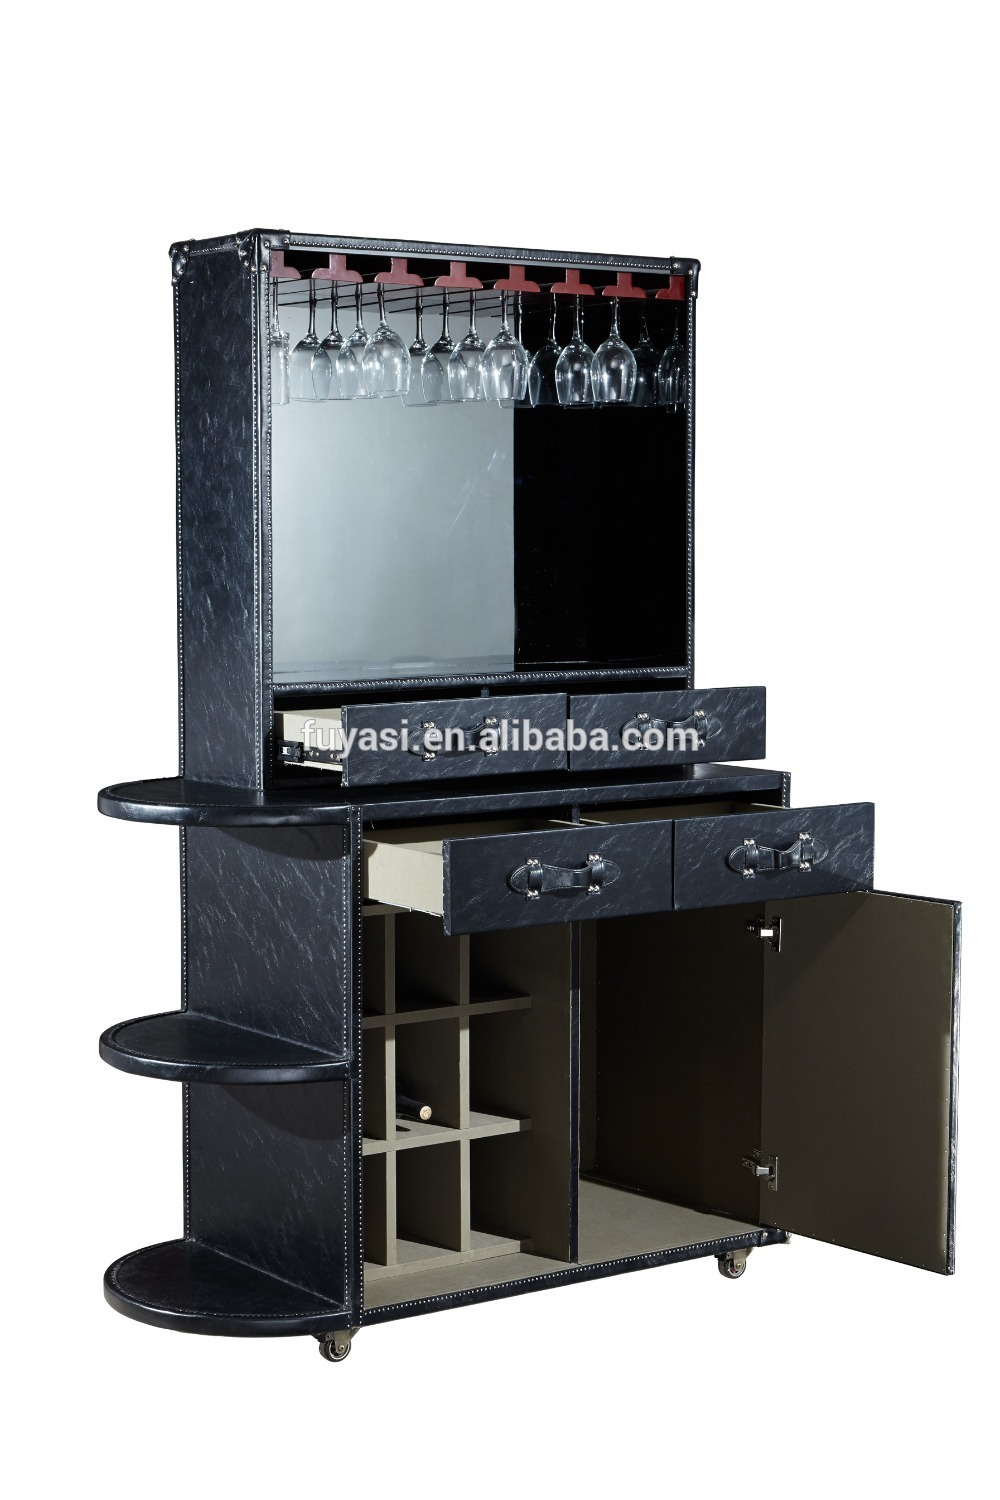 Bar Cabinetfurniture Design Living Room Cabinet Home Bars Bar intended for 13 Clever Concepts of How to Improve Living Room Bar Sets